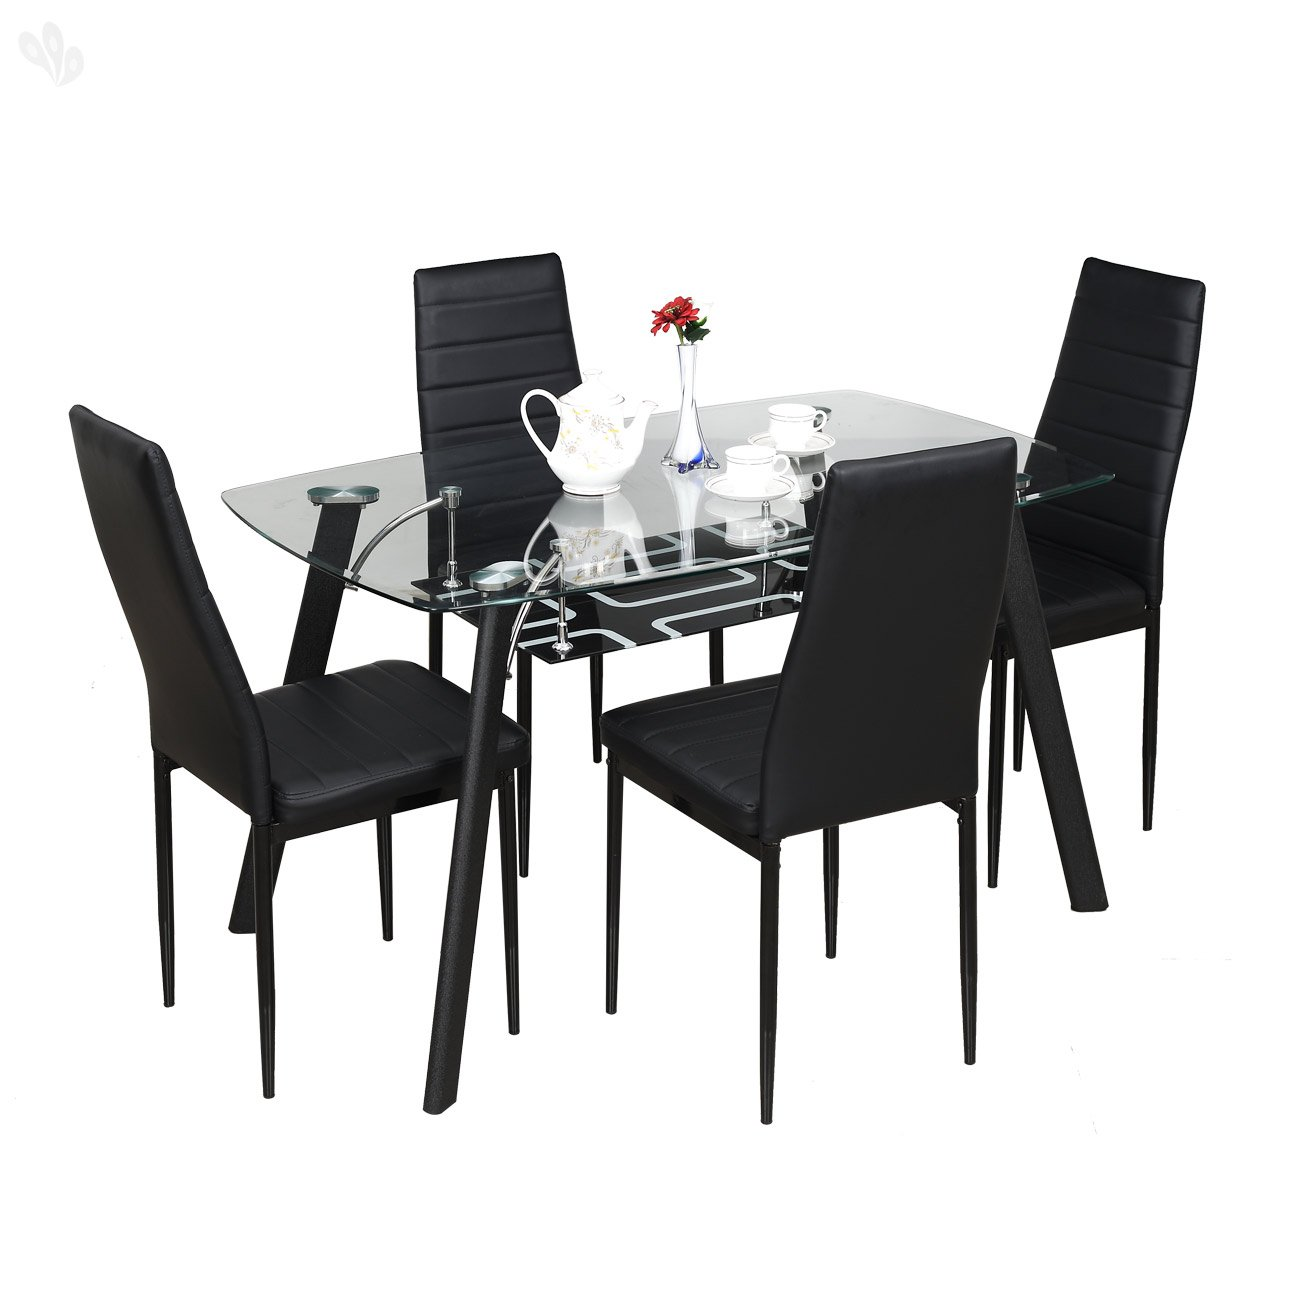 Royal oak milan four seater dining table set black for 4 chair dining table